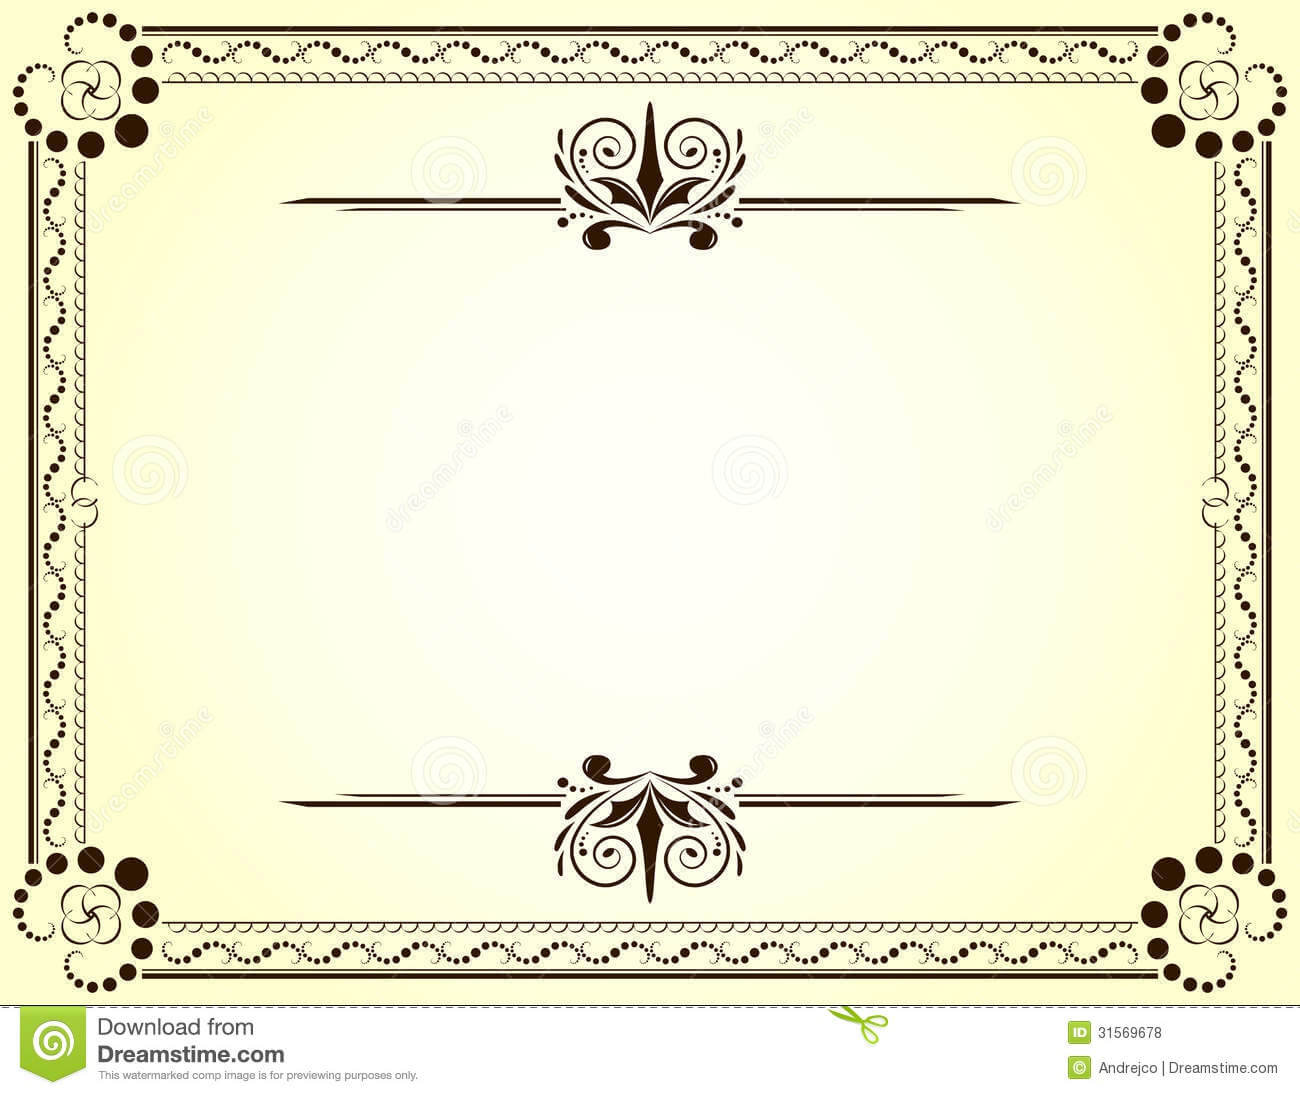 Certificate Stock Vector. Illustration Of Vignette, Frame In Blank Certificate Templates Free Download